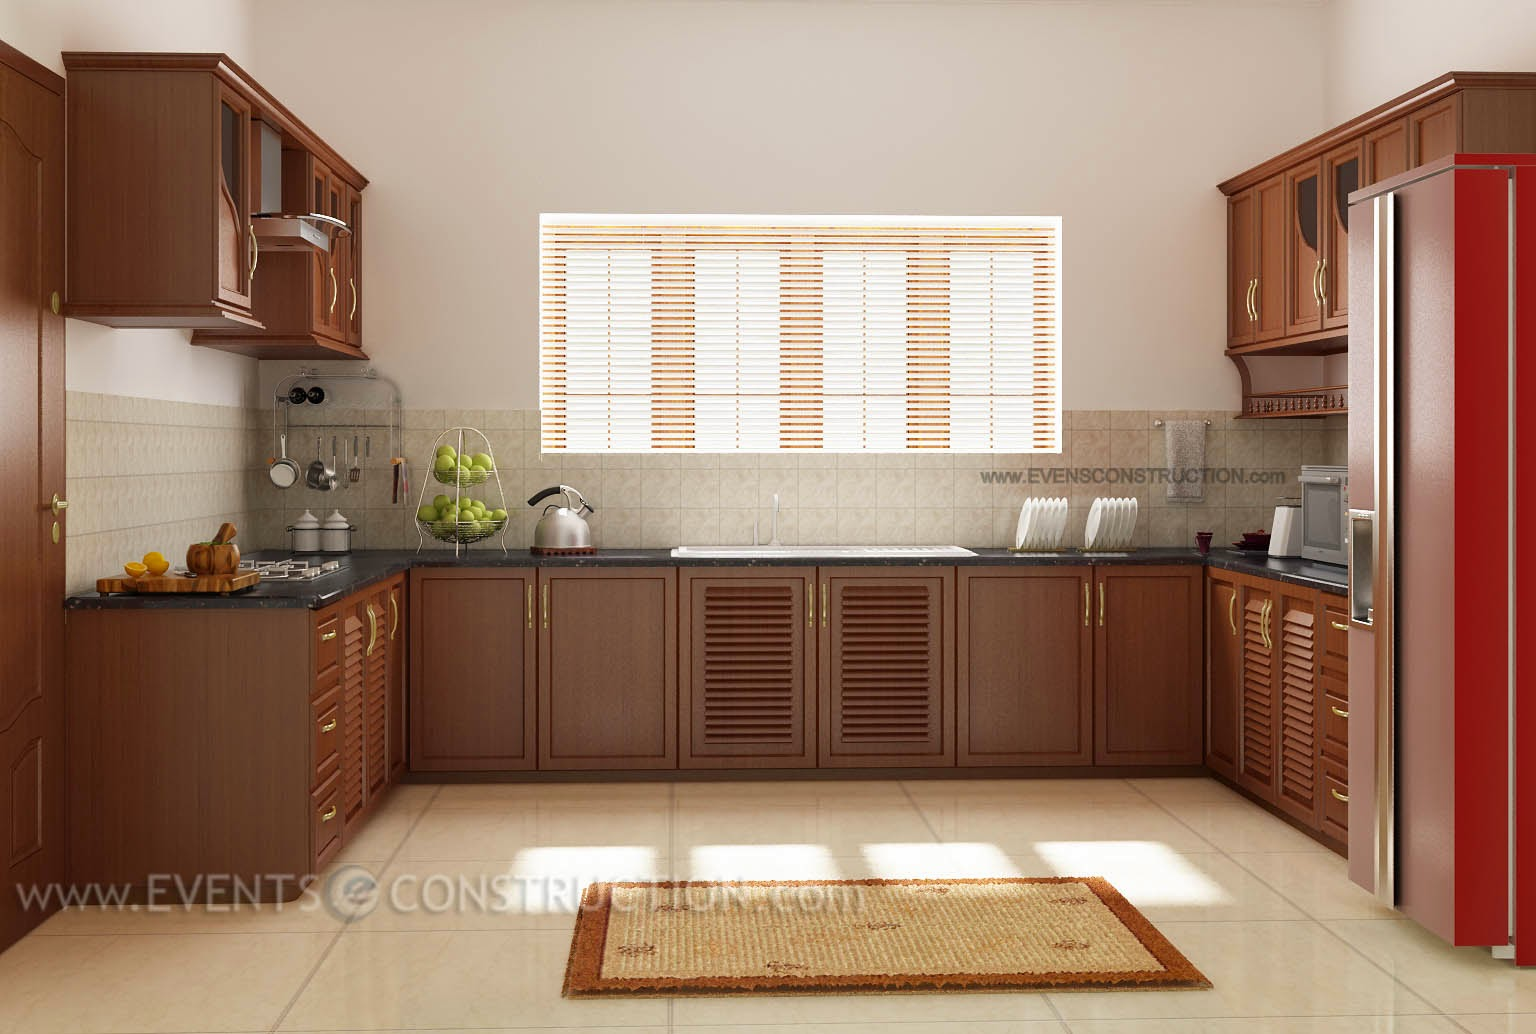 kerala home kitchen designs interior of a kerala kitchen home 4930